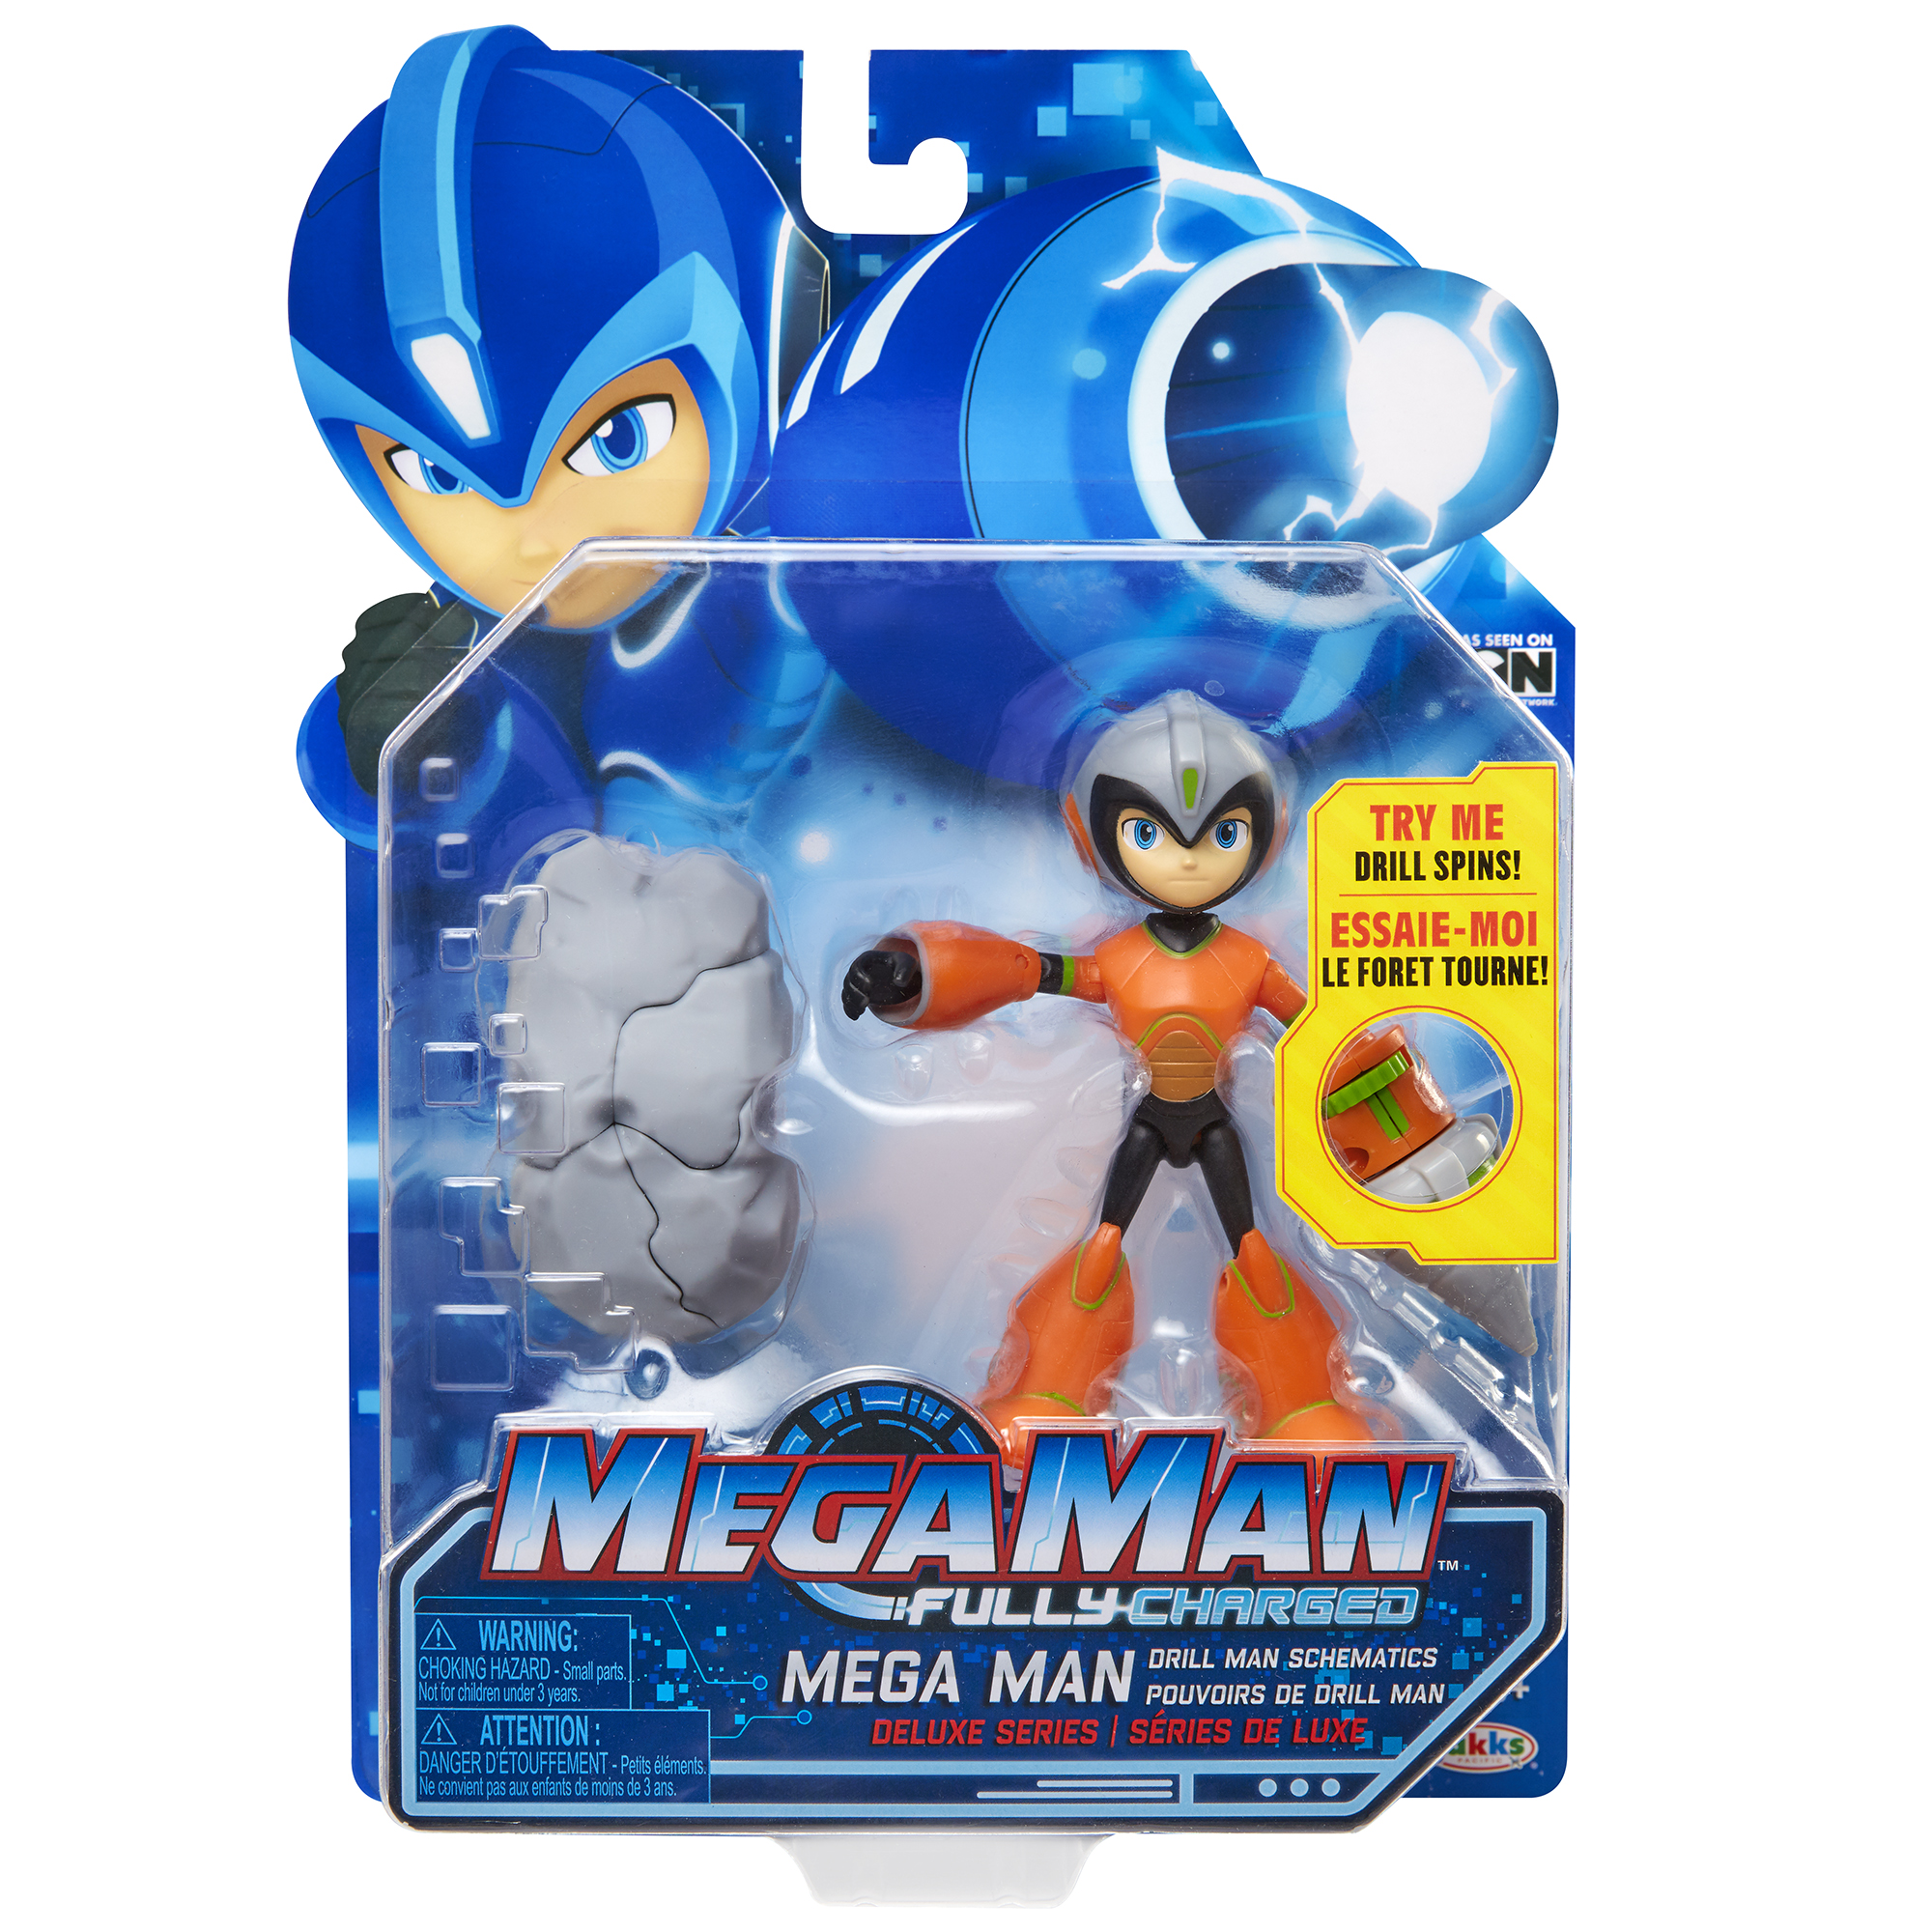 Deluxe 5 Mega Man with Drill Power